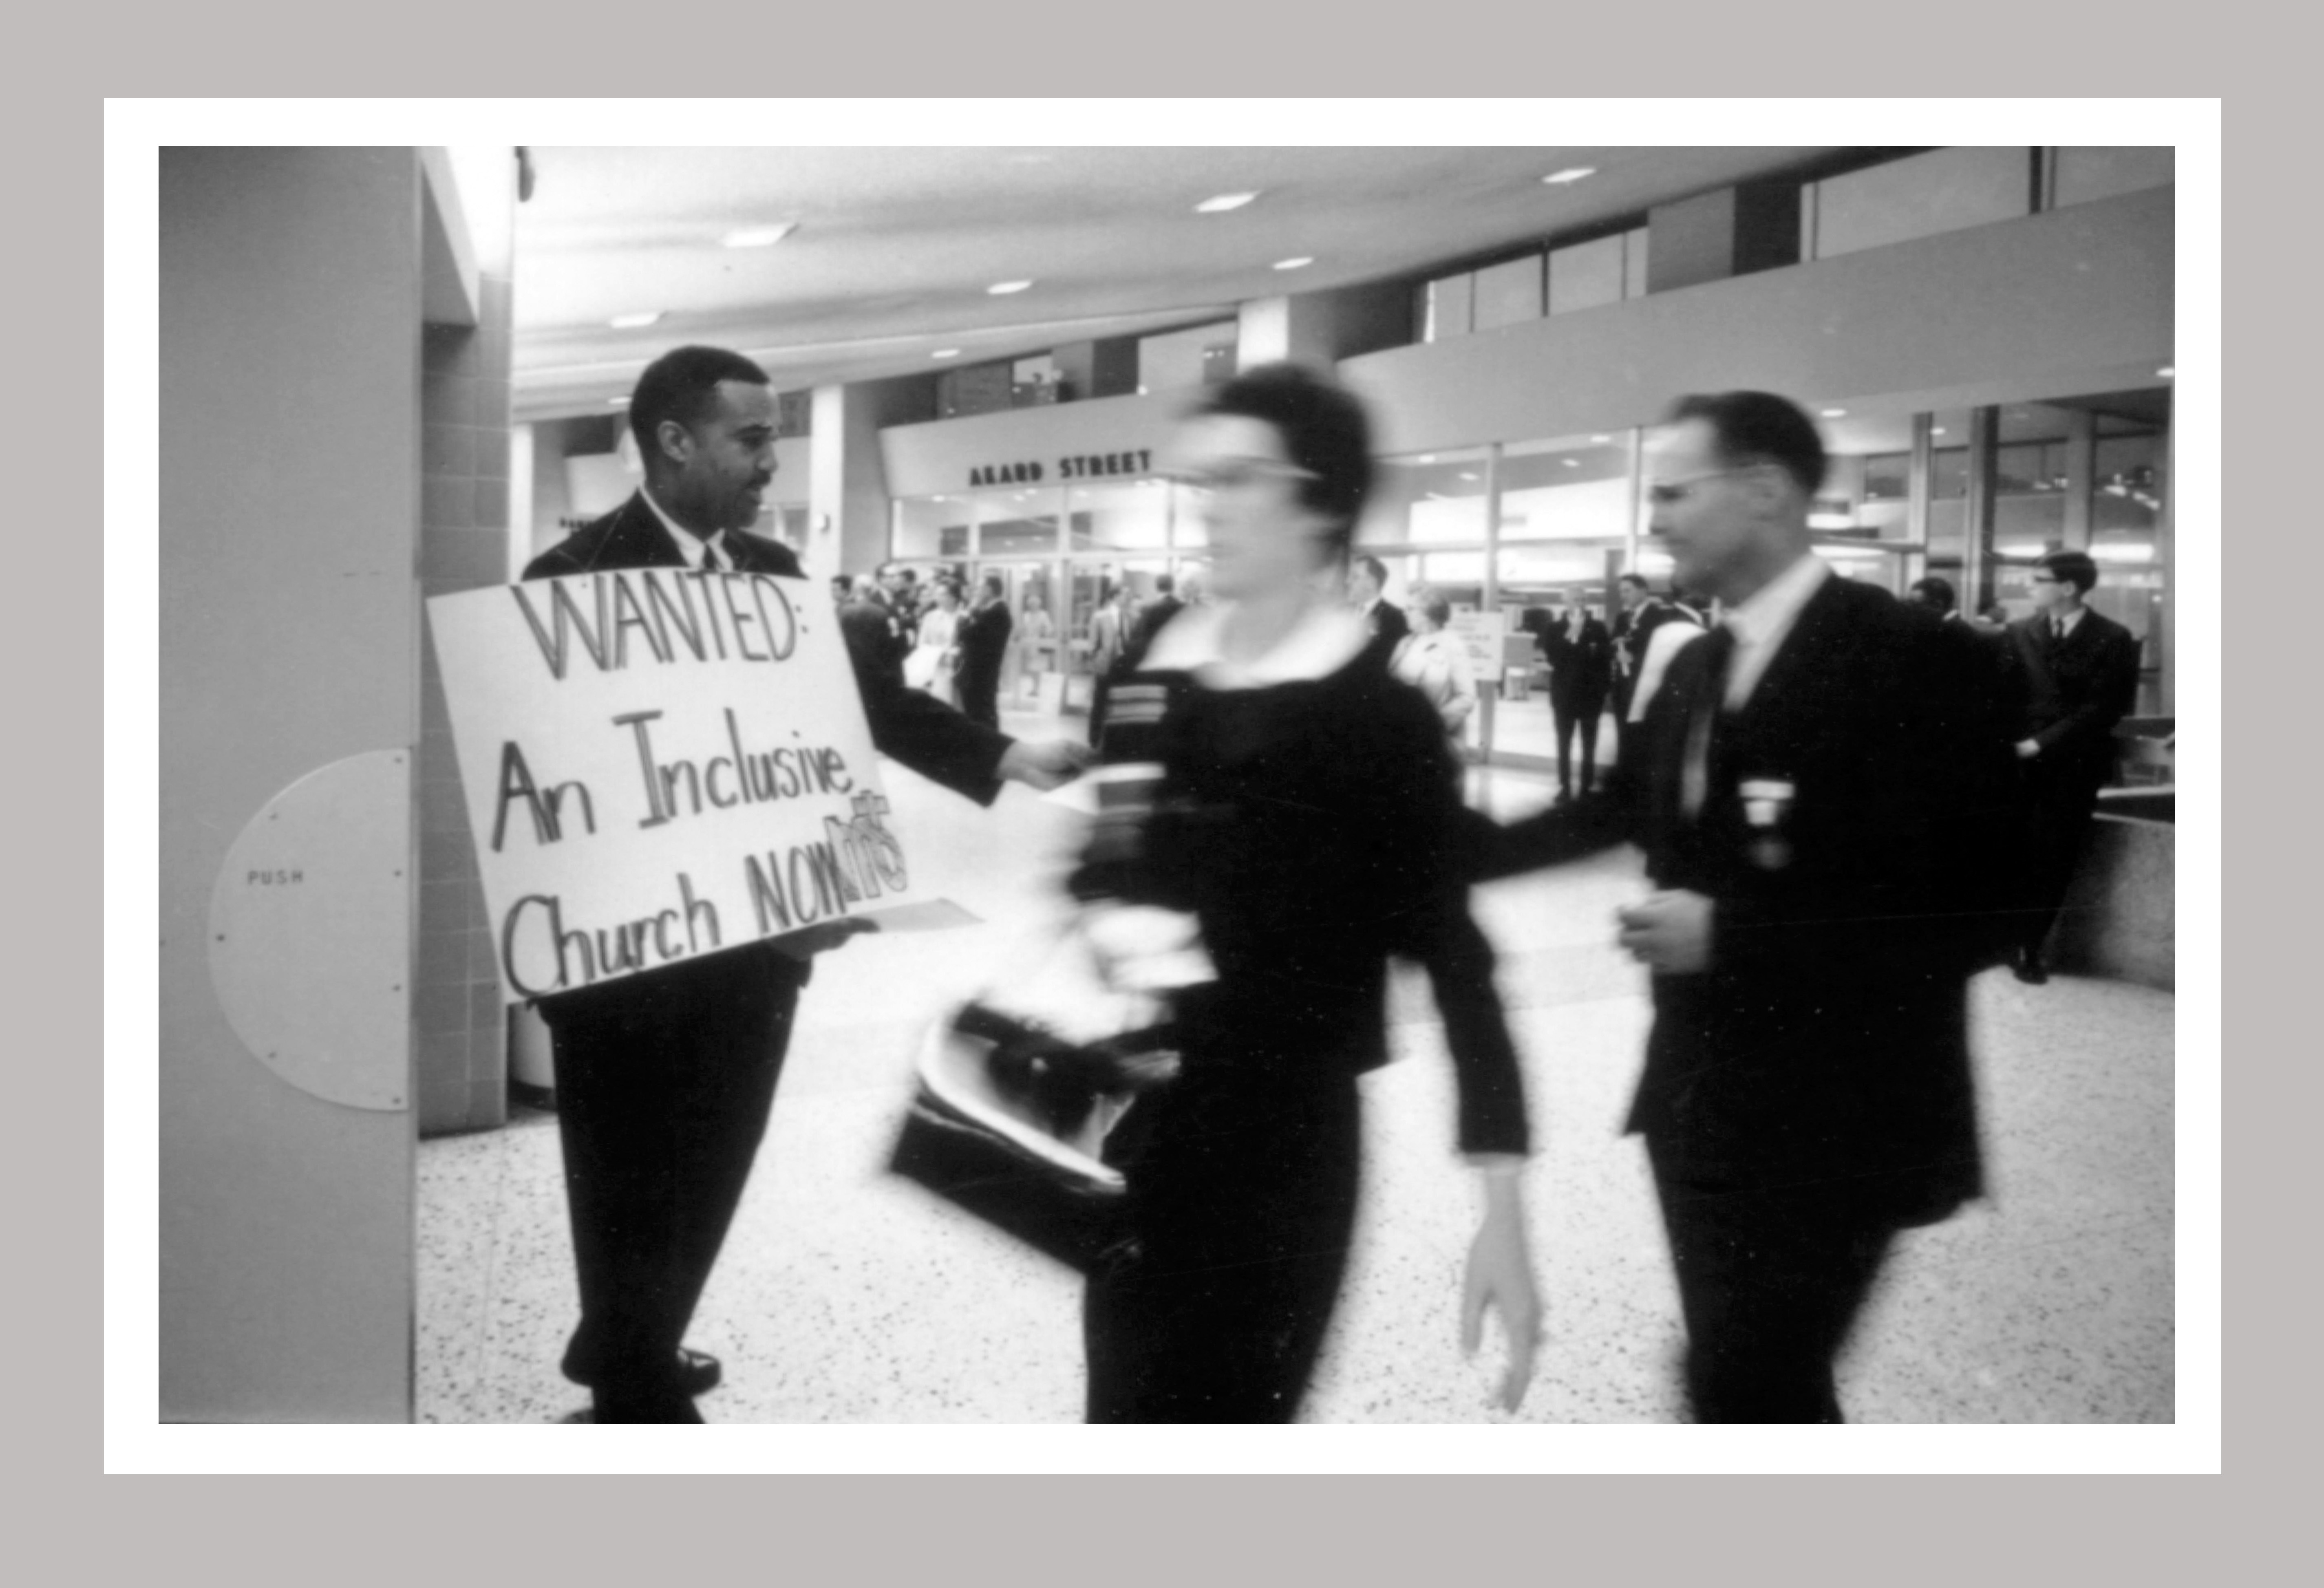 Photo from the 1968 General Conference, held April 21-May 4, 1968, Dallas. Racial segregation was one of the main issues confronting the merger that created The United Methodist Church. Photo courtesy of United Methodist Commission on Archives and History.